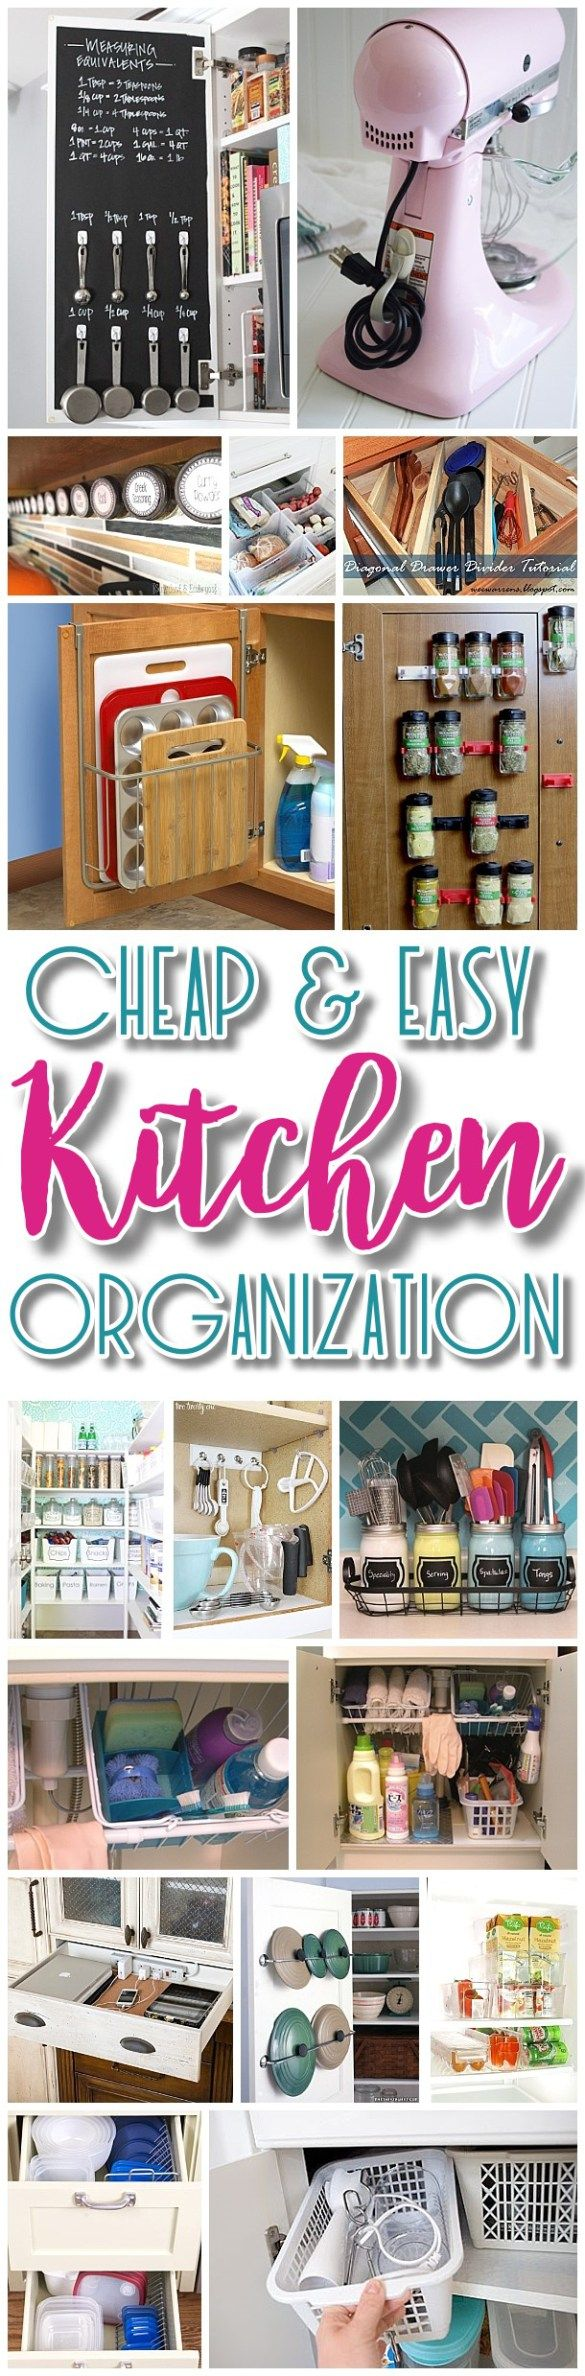 kitchen organization ideas budget easy budget friendly ways to organize your kitchen 5436